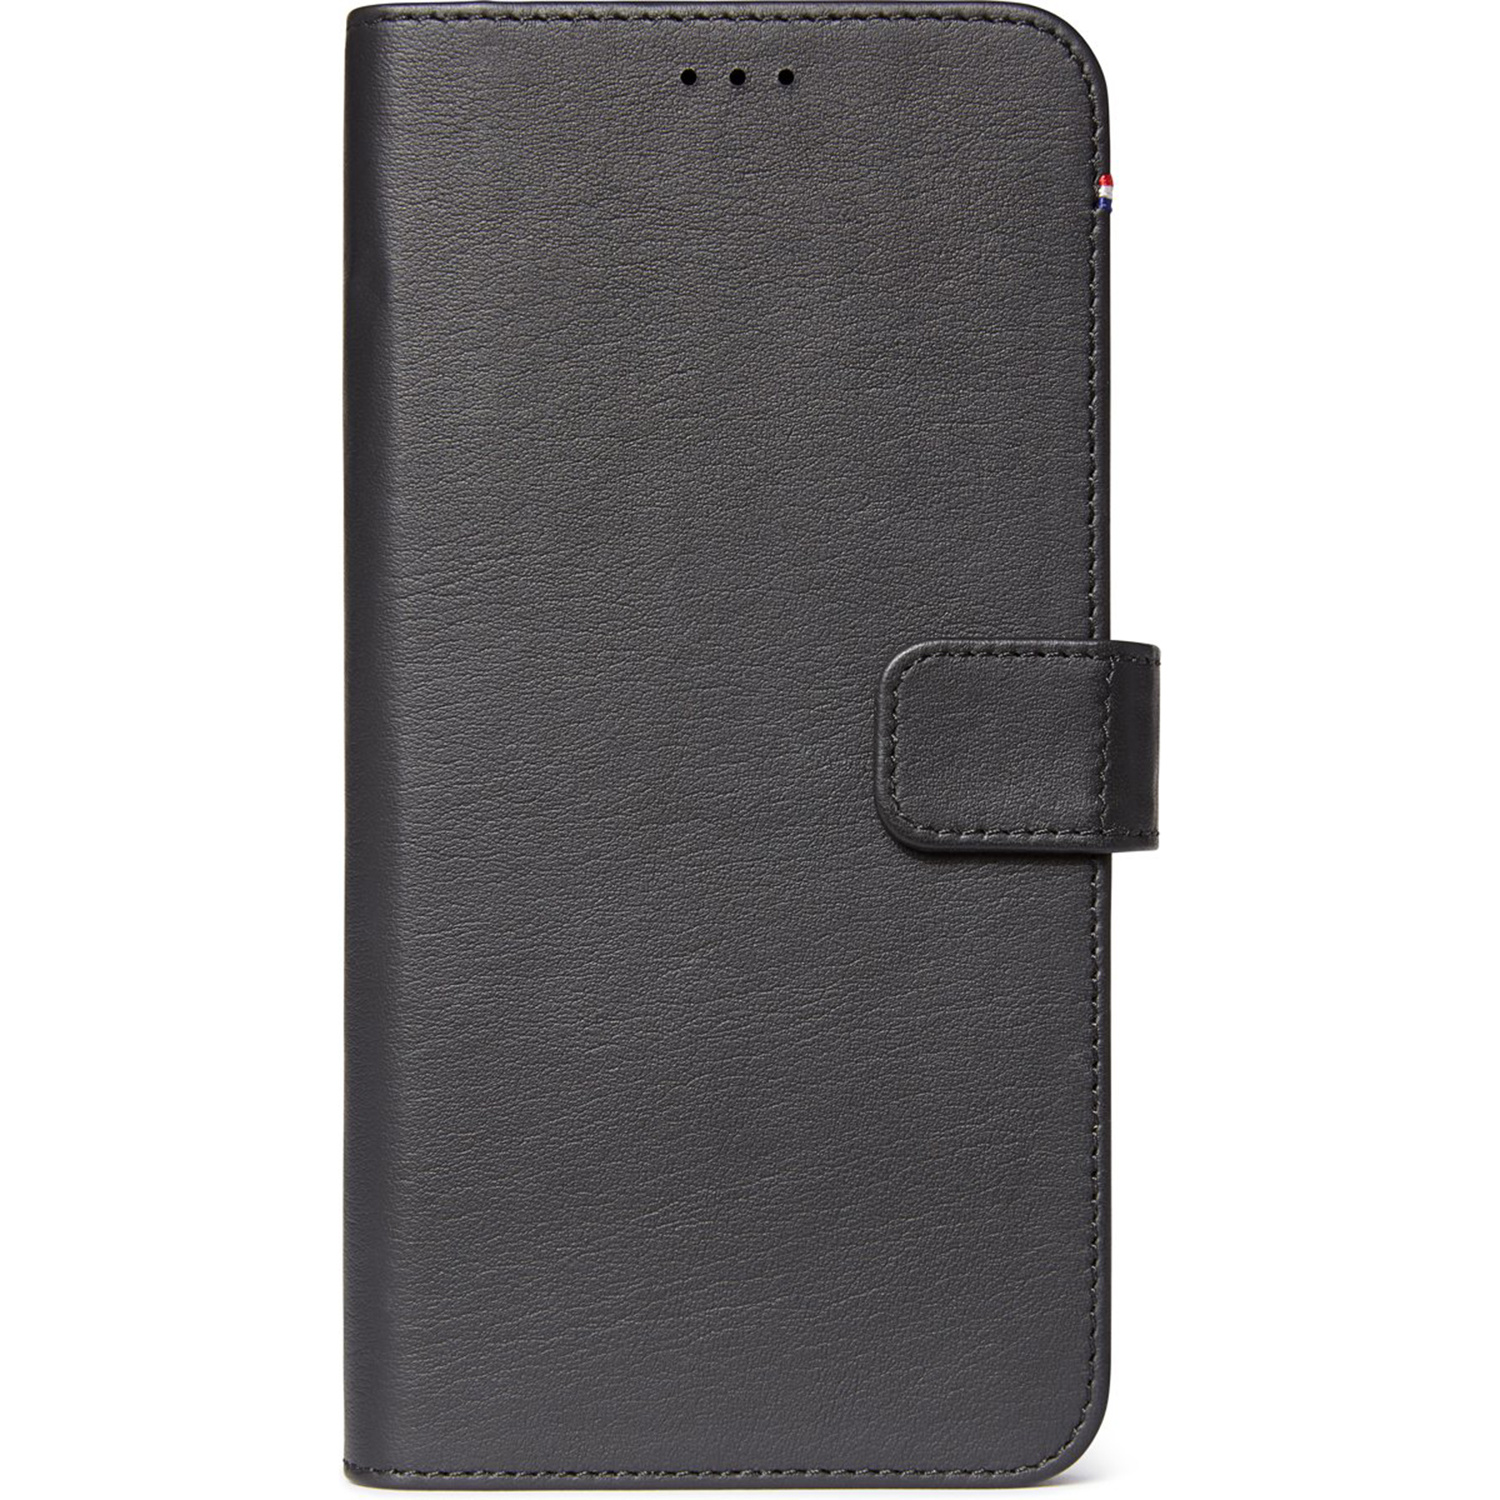 Decoded 2 in 1 Leather Booktype Schwarz iPhone 11 Pro